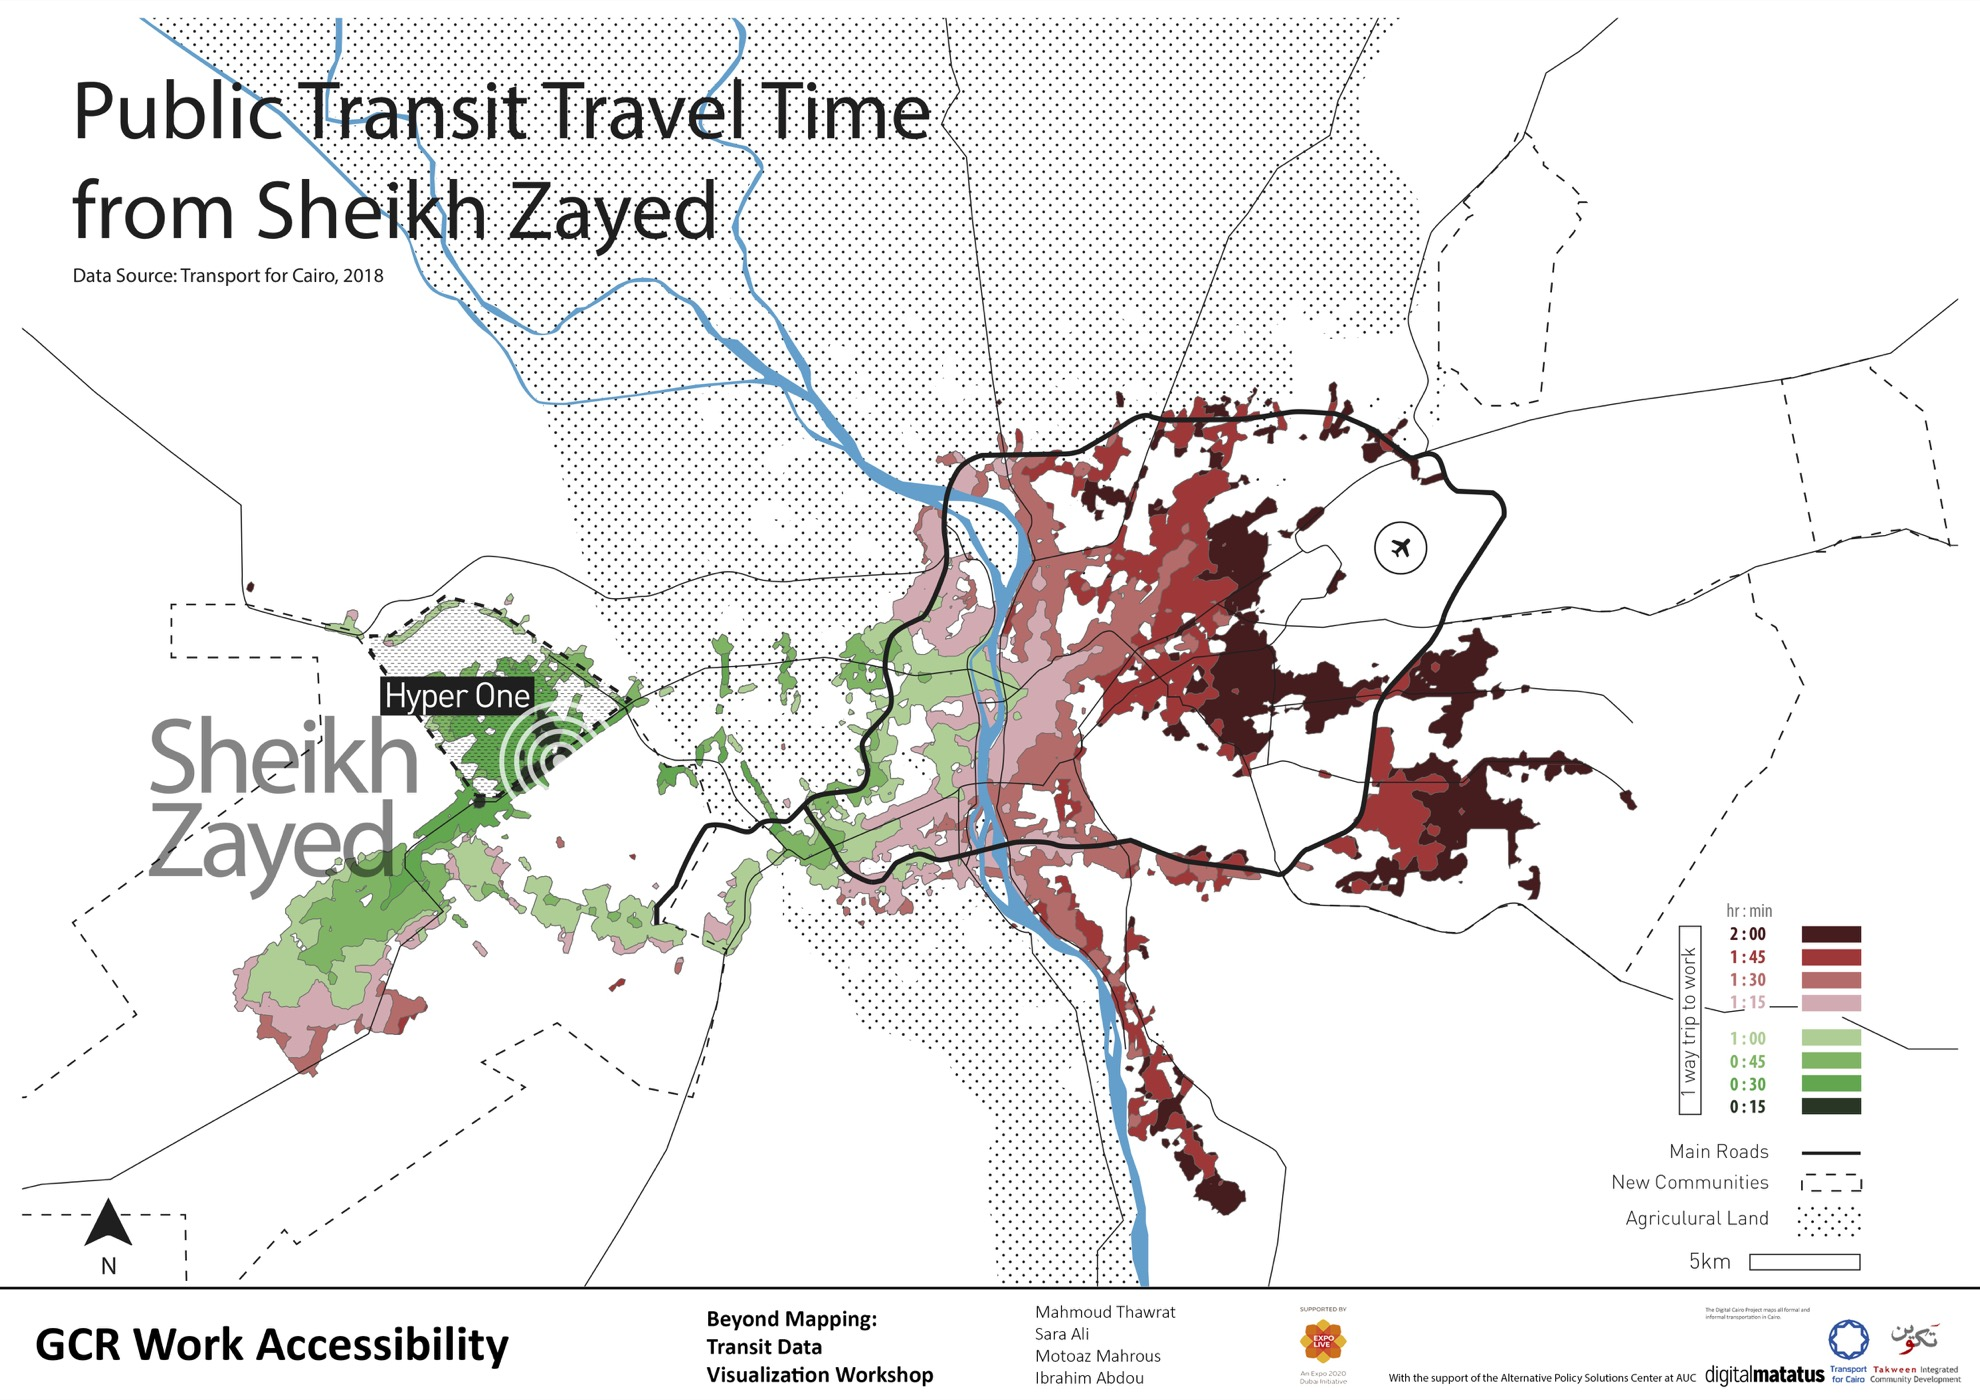 sheikh zayed transit travel time cairo